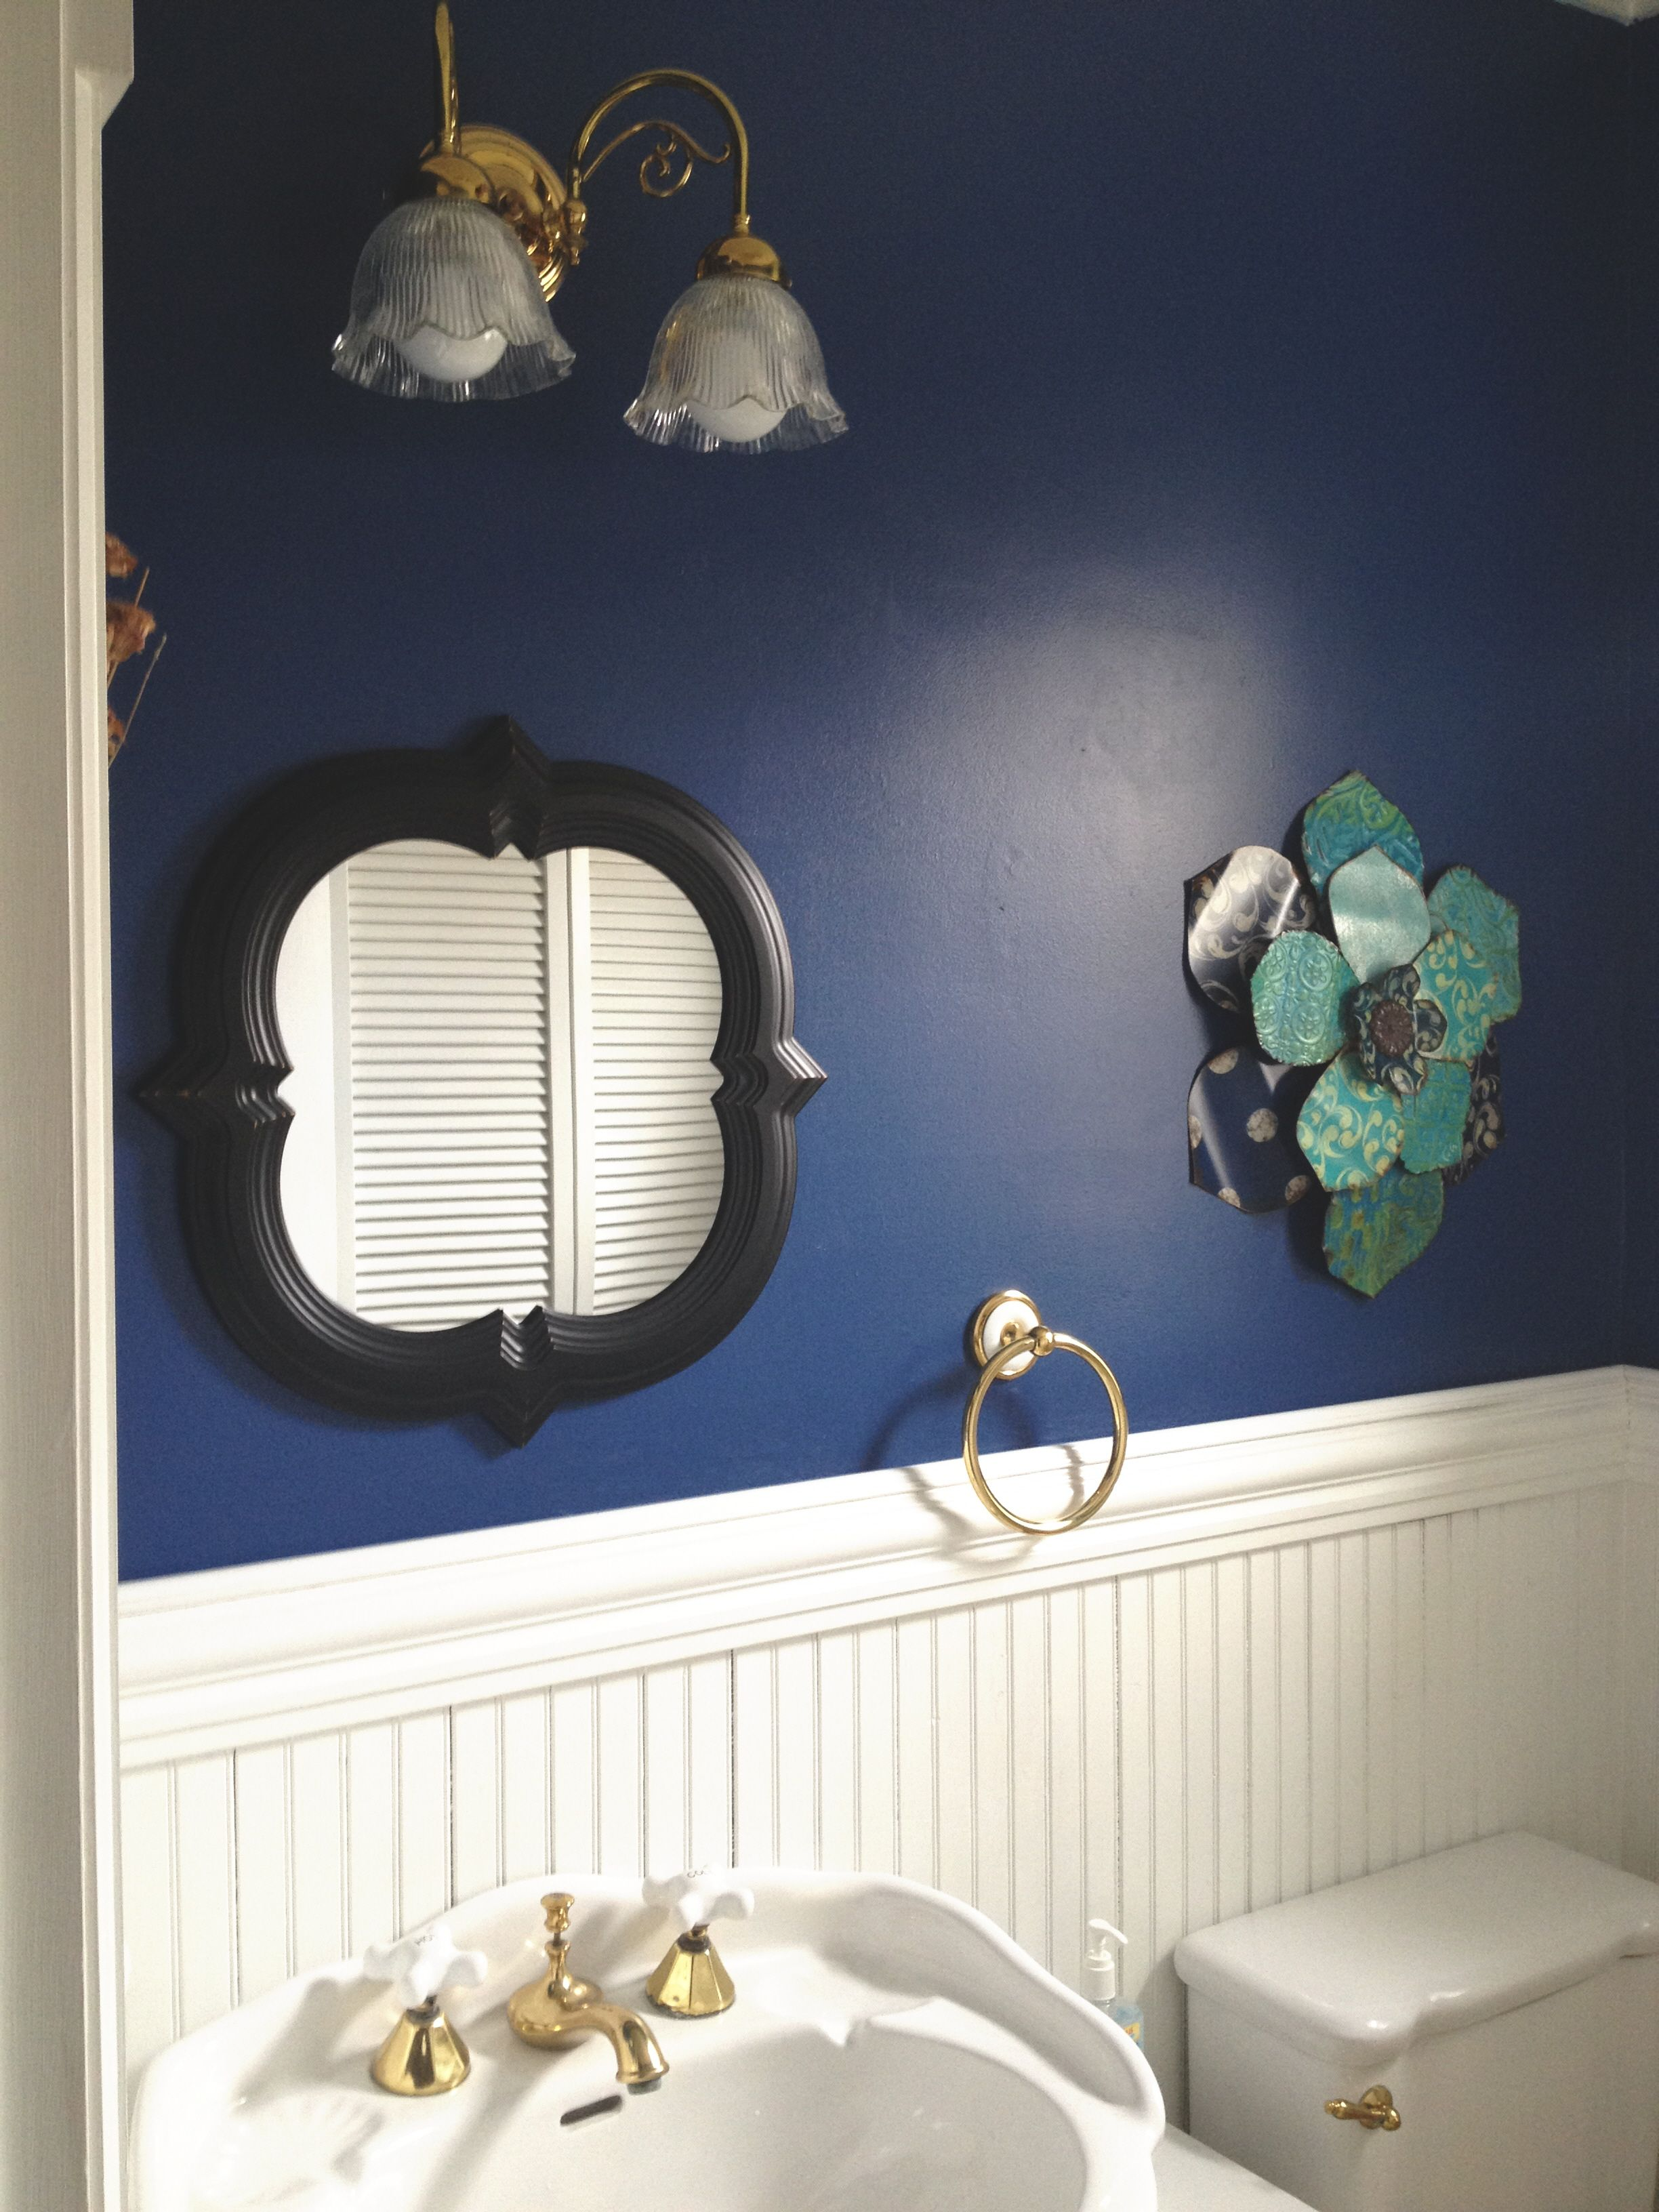 dark blue walls with white wainscoting in bathroom very nice dark blue walls with white wainscoting in bathroom very nice contrast